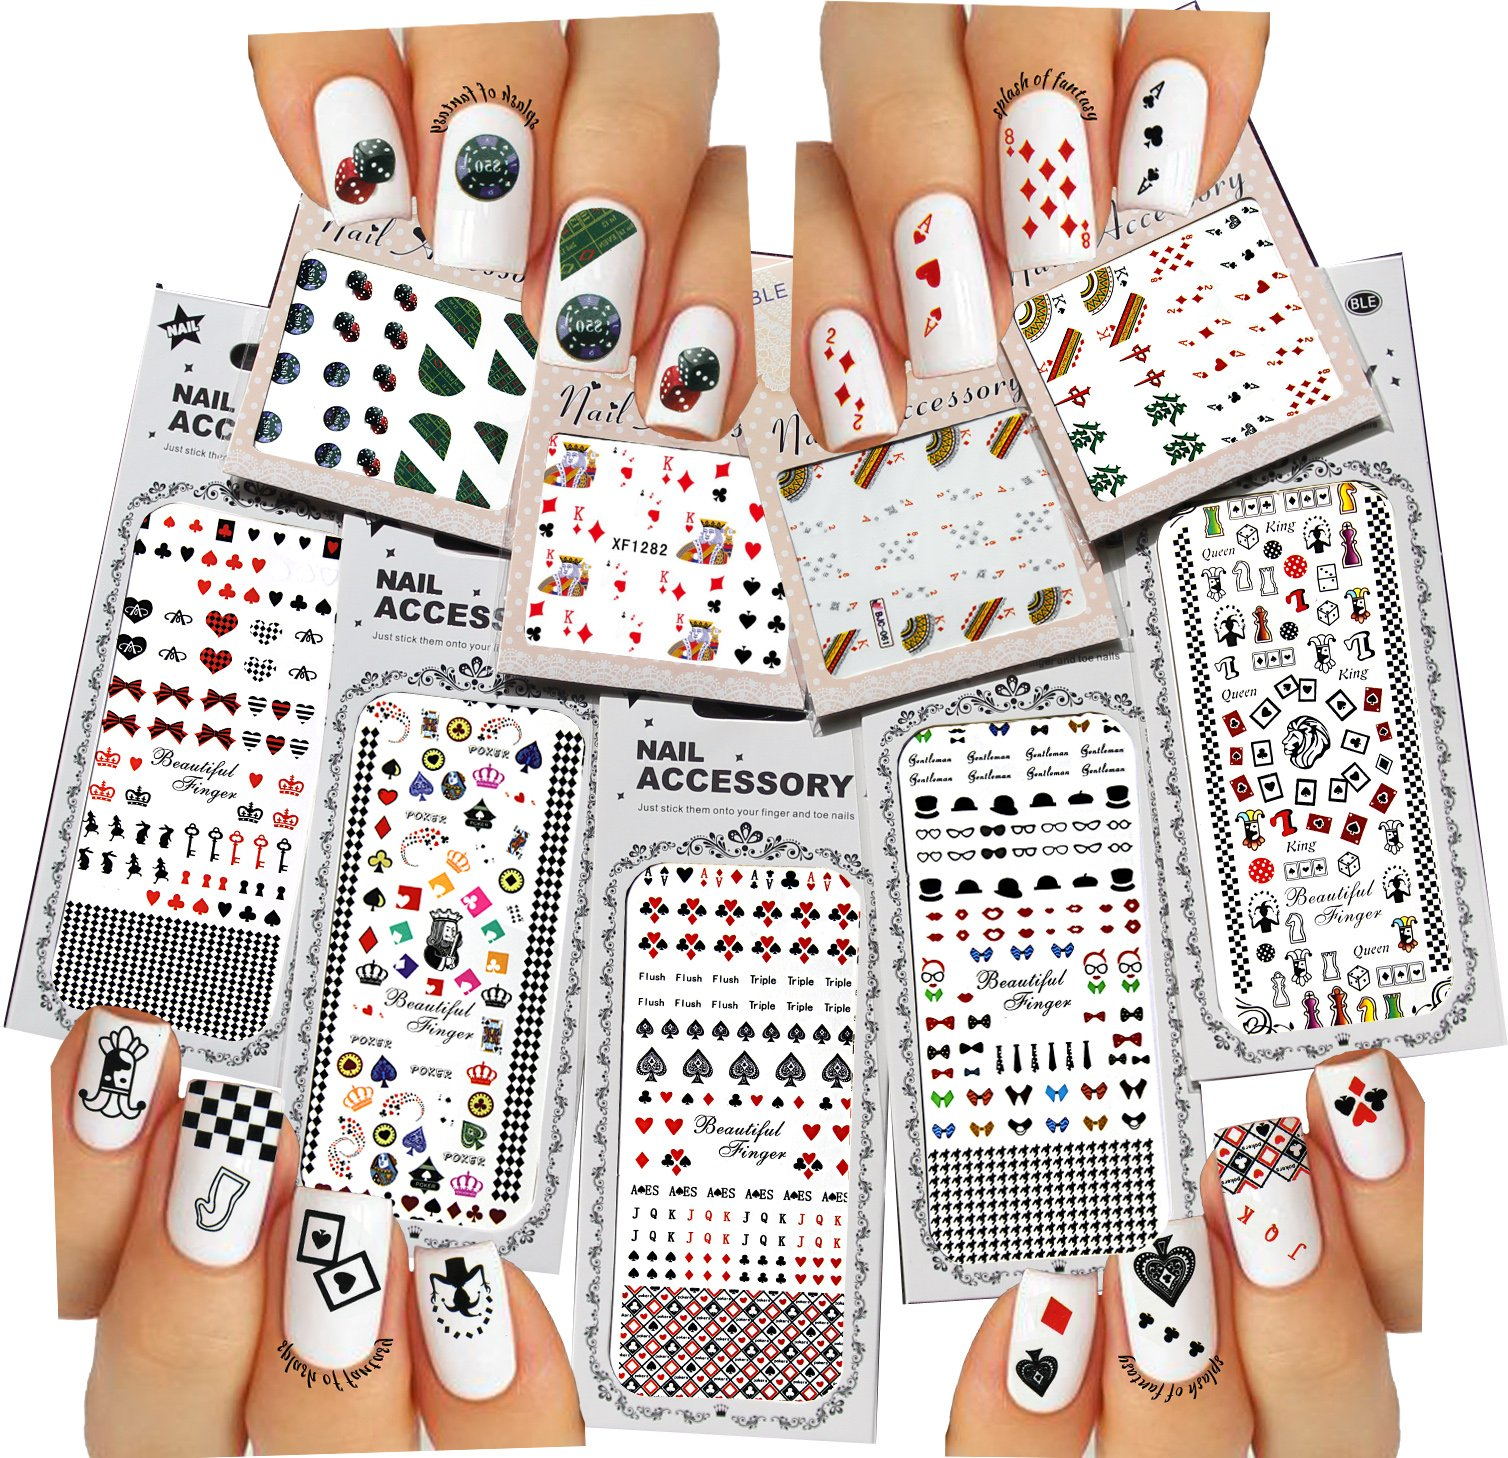 Nail Art Water Slide Tattoos ♥ Fun Designs: Playing Cards, etc. ♥ For a Fun Manicure 9 - Pack /PLI/ by La Demoiselle